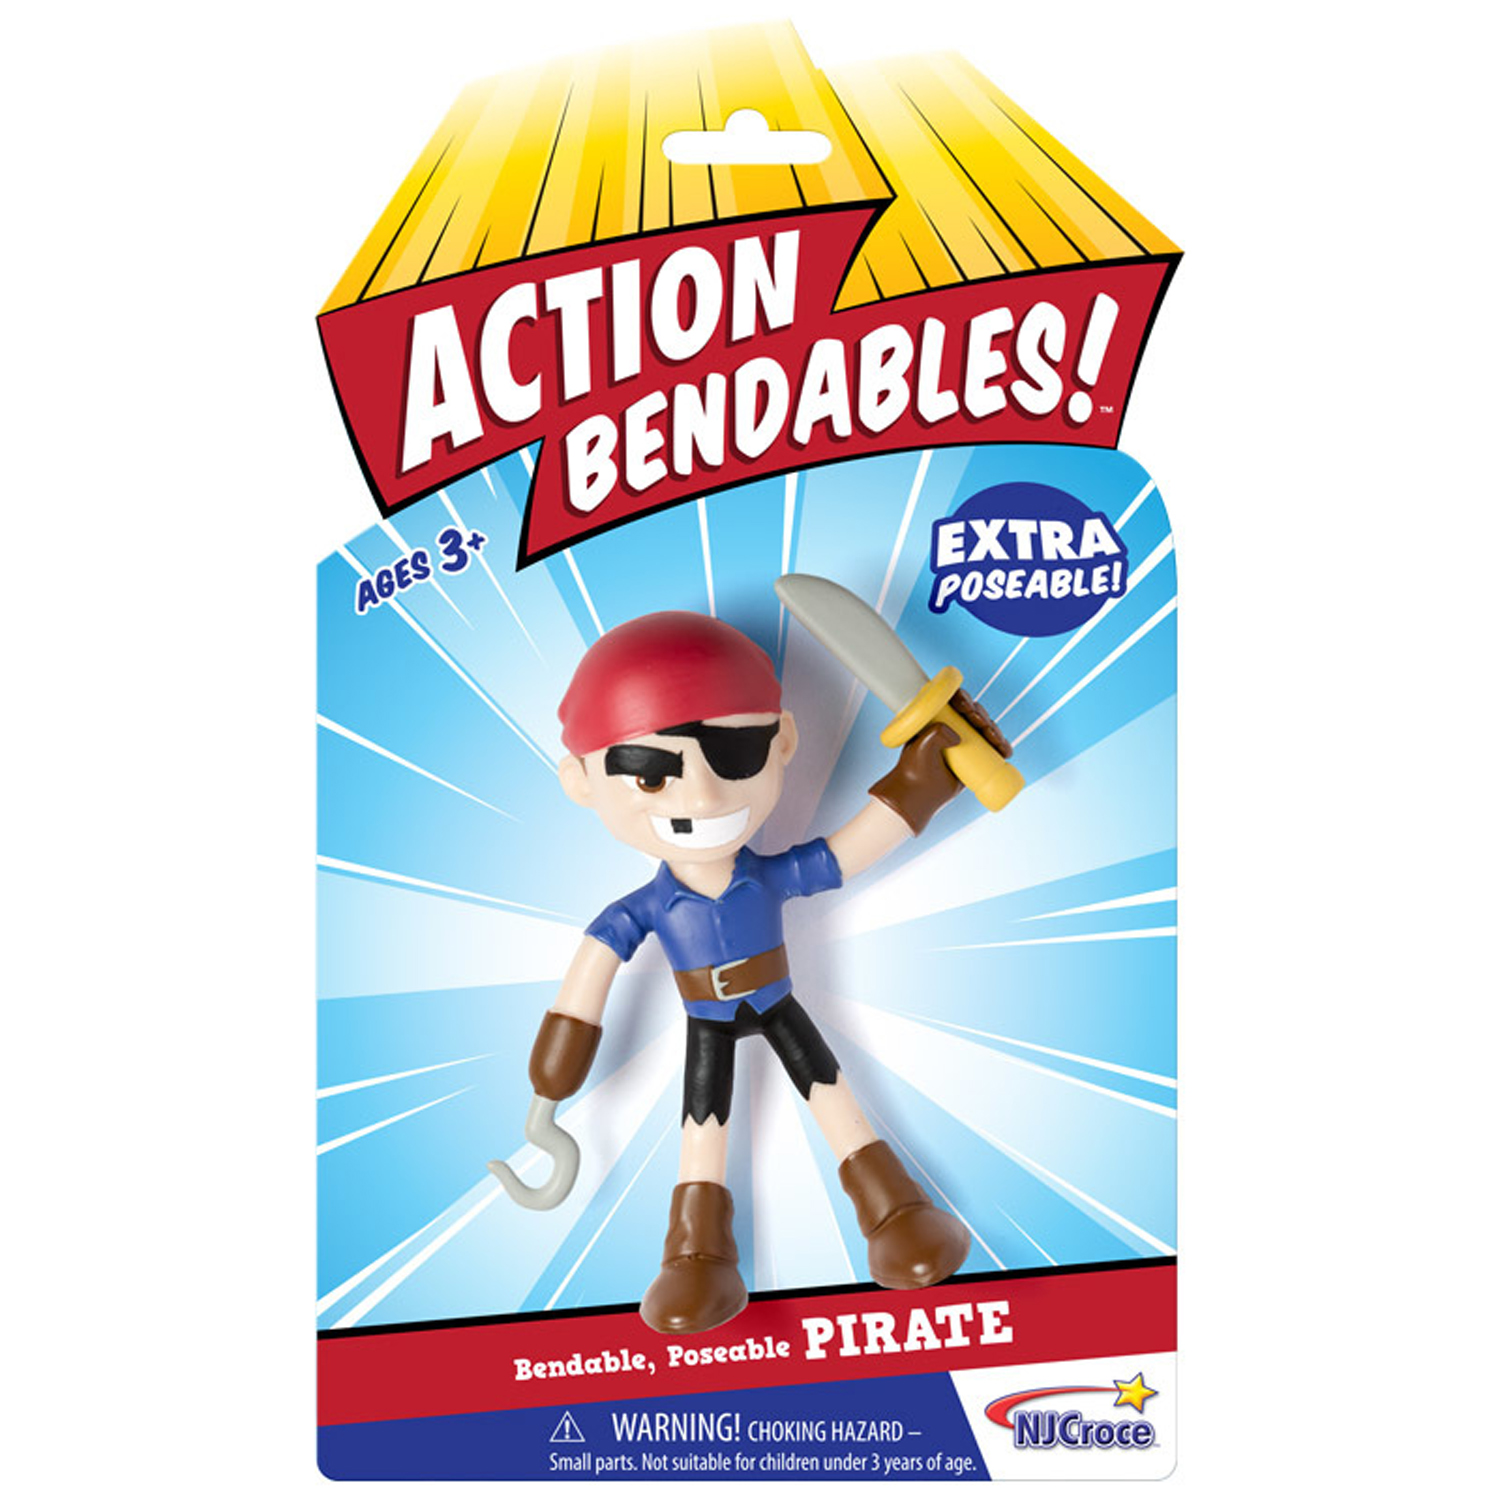 "NJ Croce ACTION BENDALBES! - 4"" Pirate Action Figure"